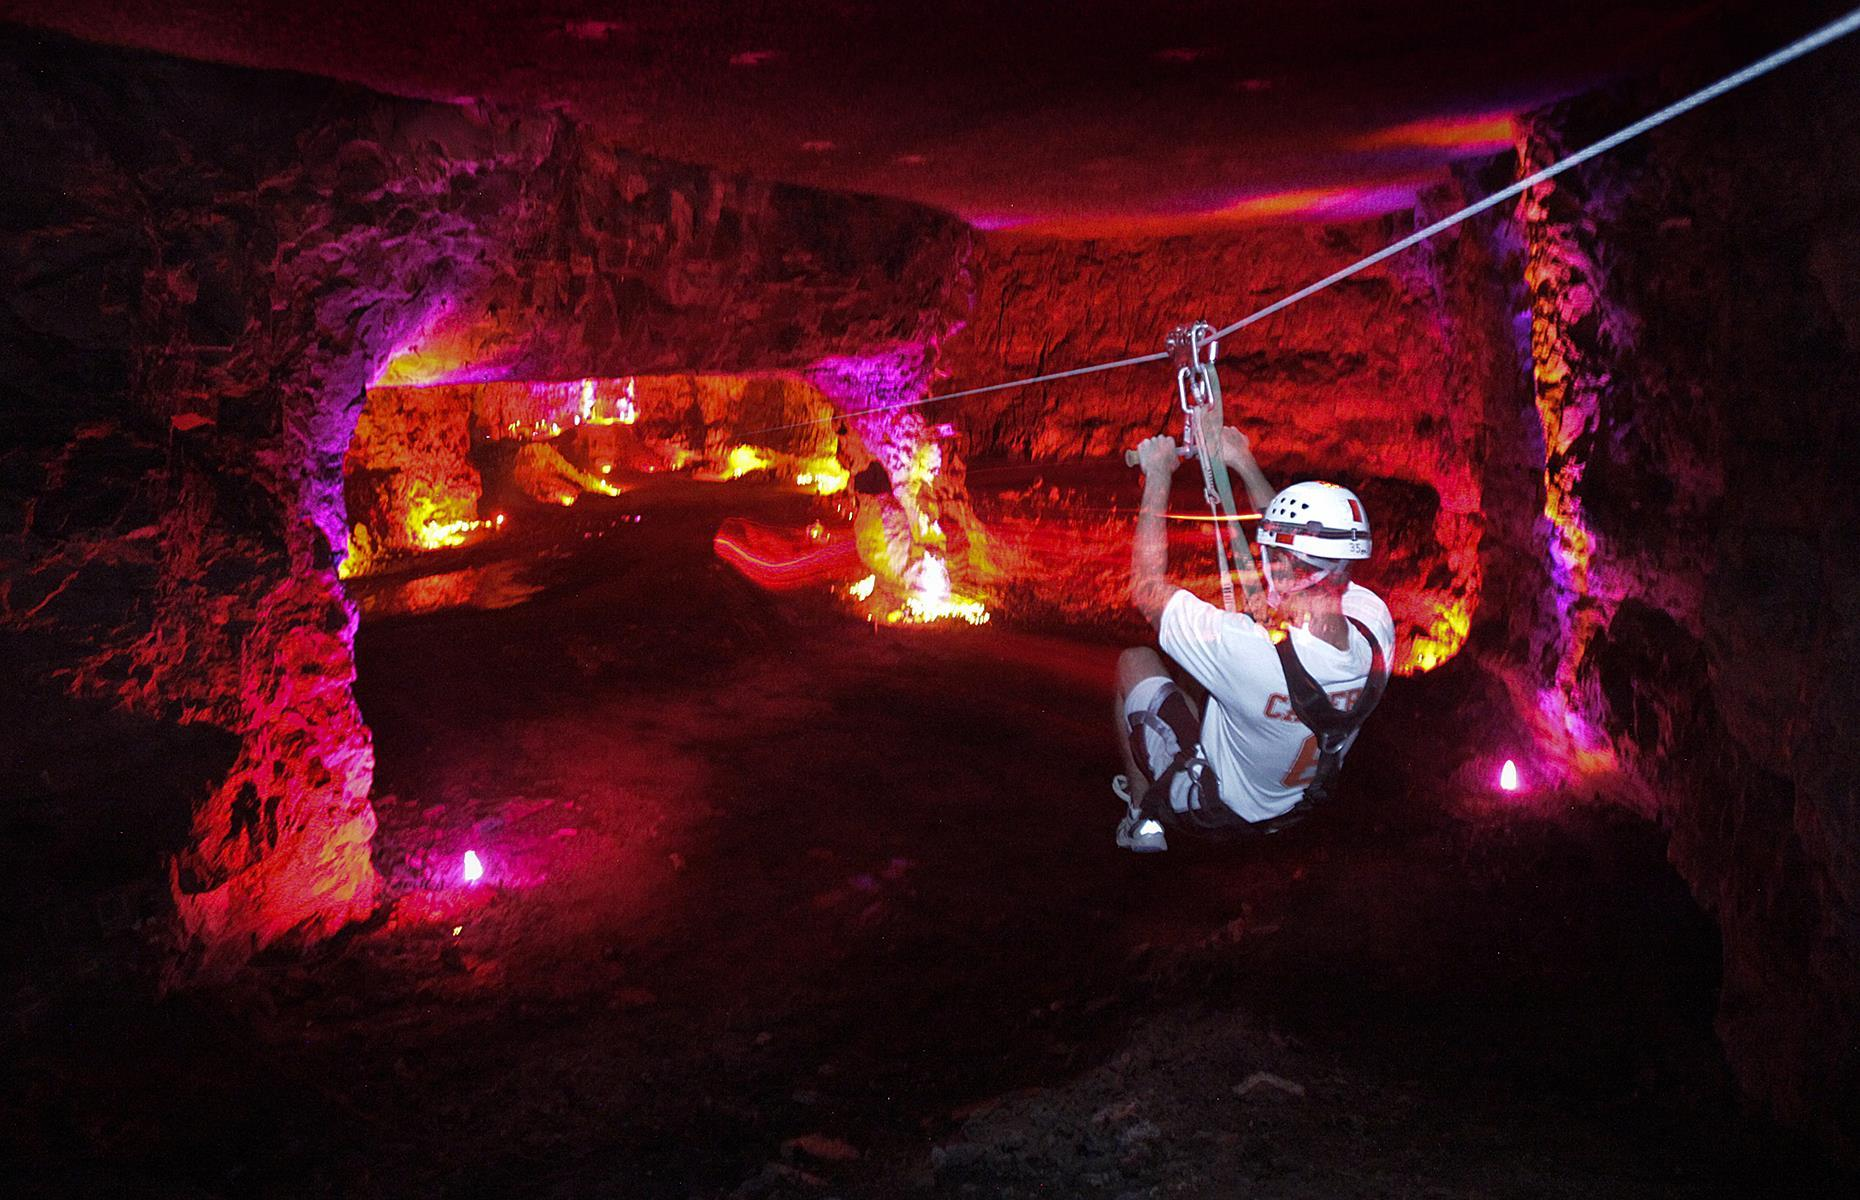 Slide 25 of 27: Louisville Mega Cavern is actually a vast 100-acre limestone quarry, hollowed out by blasting when it was mined in the mid-20th century. Today, it houses Mega Zips which boasts the title of the world's only fully underground zip line course. Get your blood pumping as you slide through the air, reaching heights of up to 70 feet (21m). Discover the world's most incredible underground attractions.